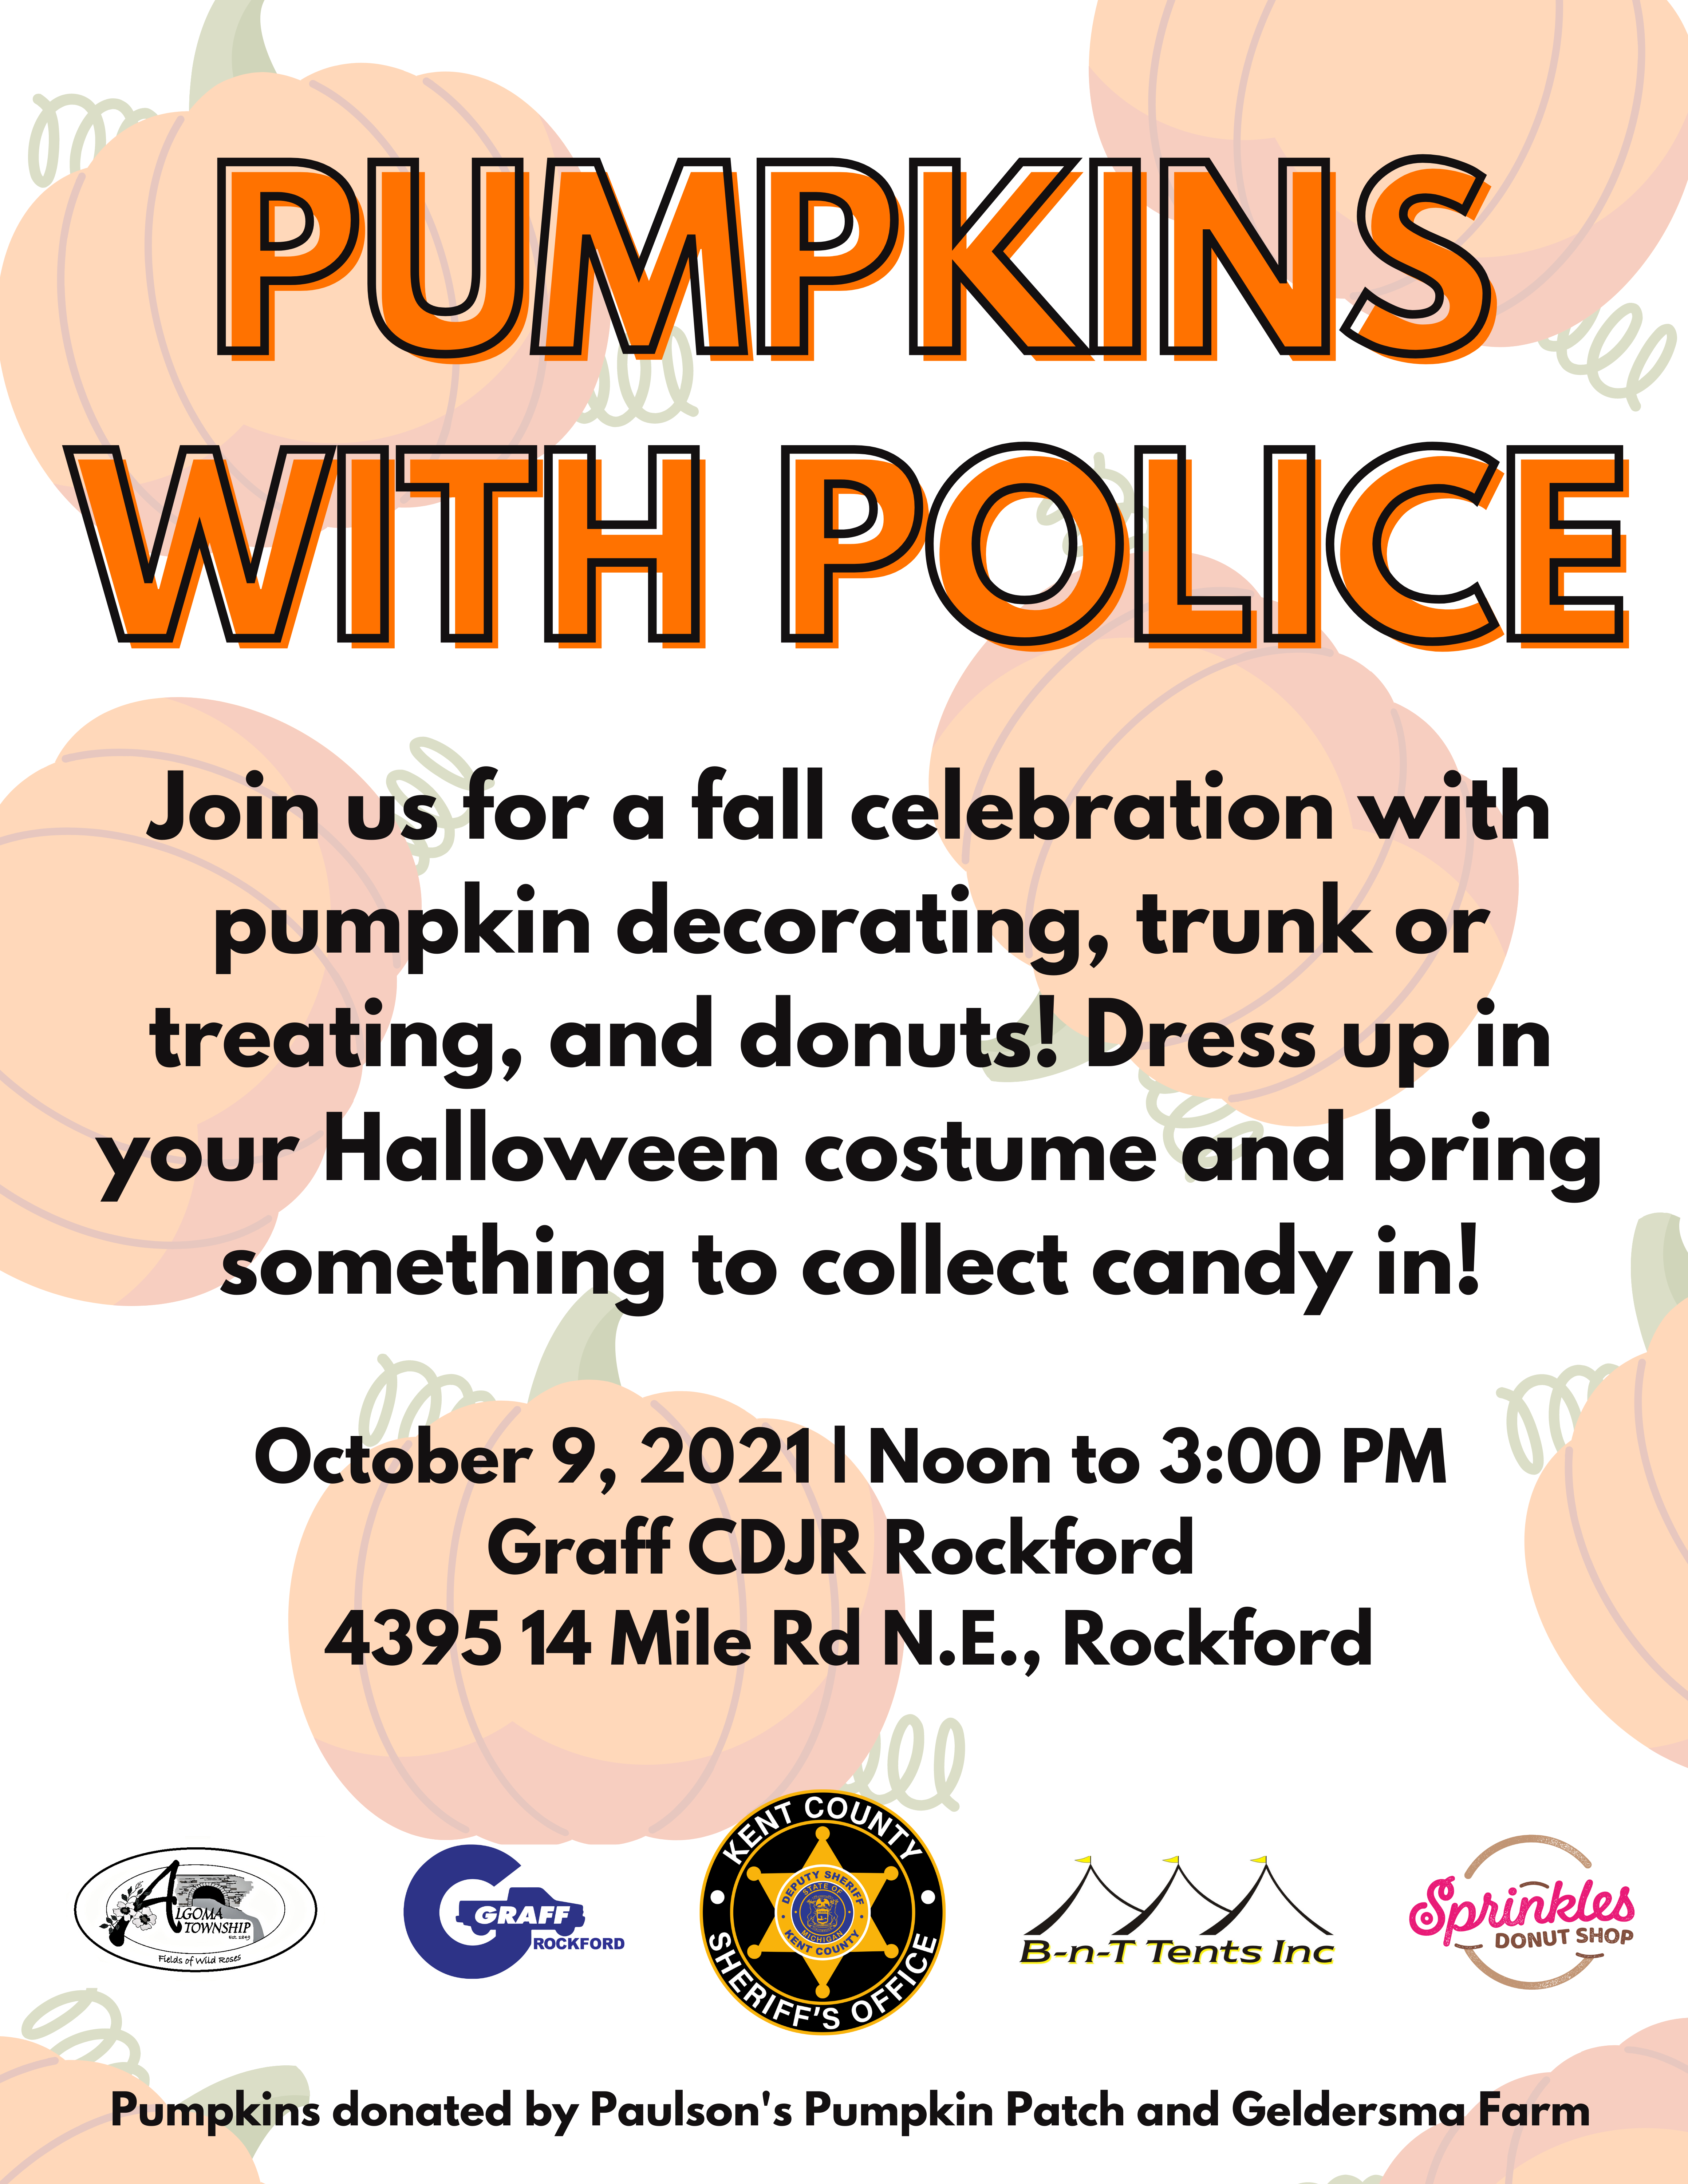 KCSO Hosts Pumpkins with Police on October 9 in Rockford